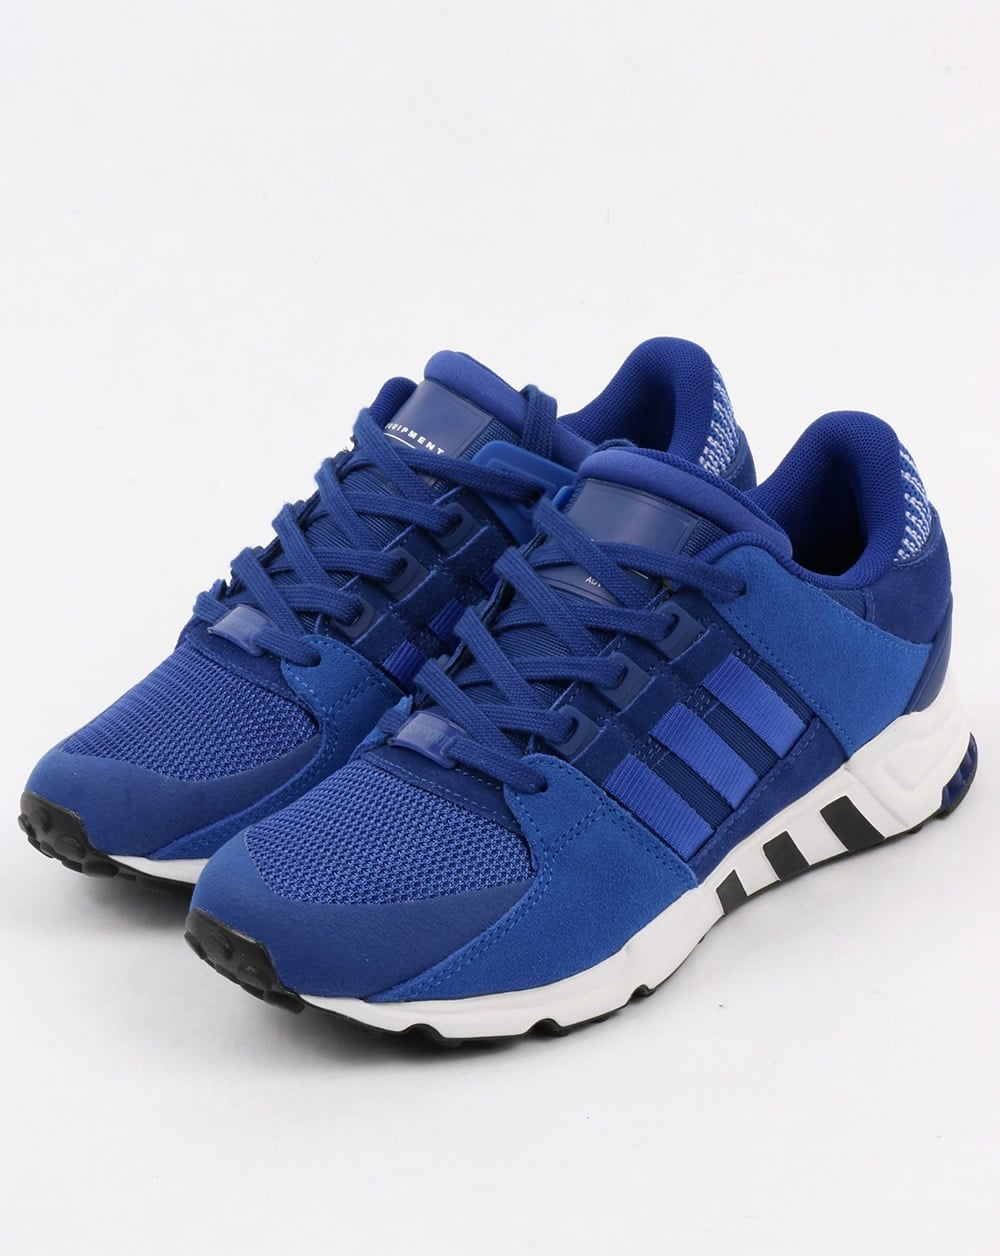 the latest cfa02 a94a5 Buy adidas eqt support rf Blue,up to 34% Discounts.